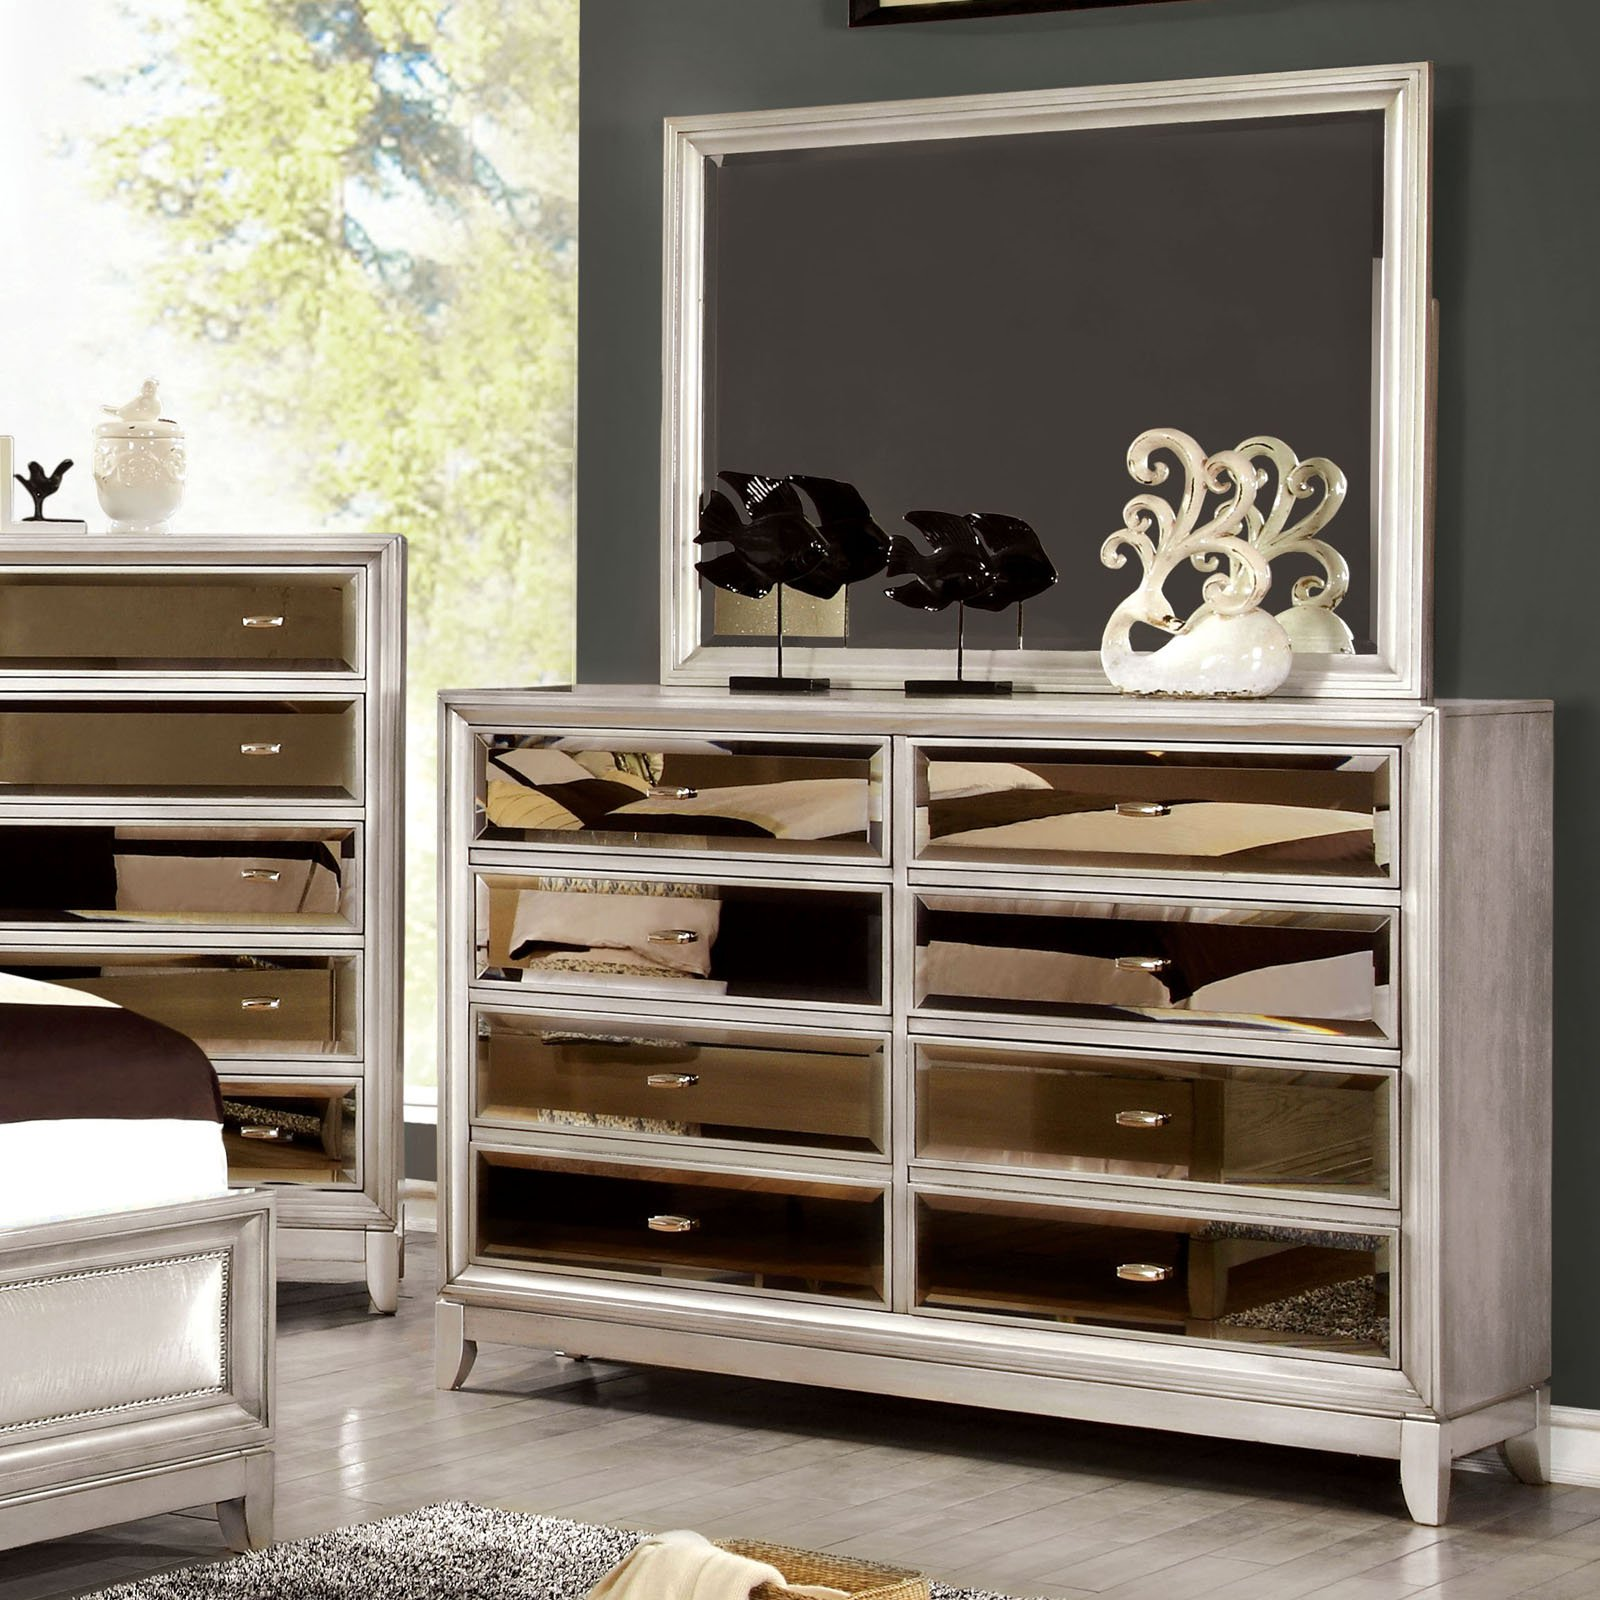 Furniture of America Glaciara 8 Drawer Dresser with Mirror